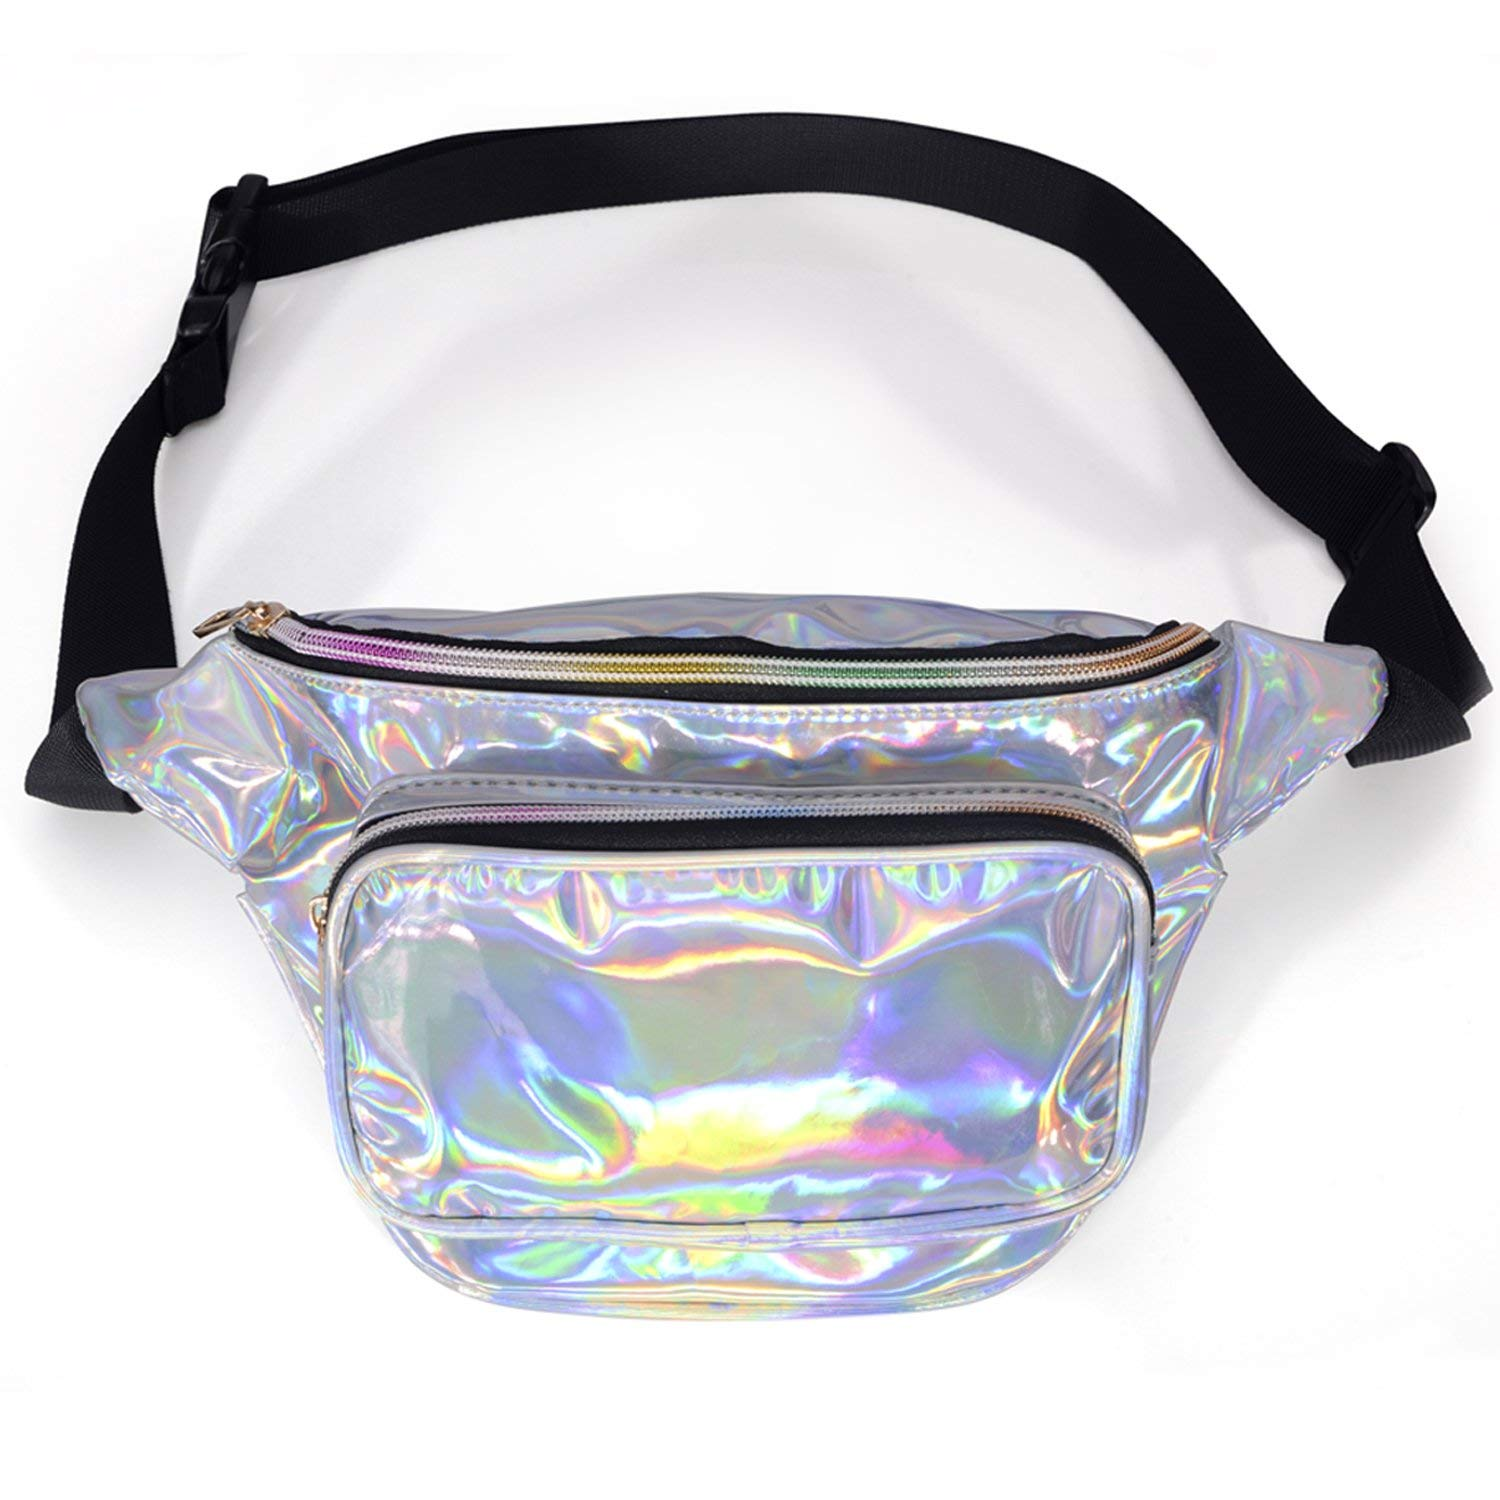 2086978942ff Cheap Cute Fanny Packs For Women, find Cute Fanny Packs For Women ...